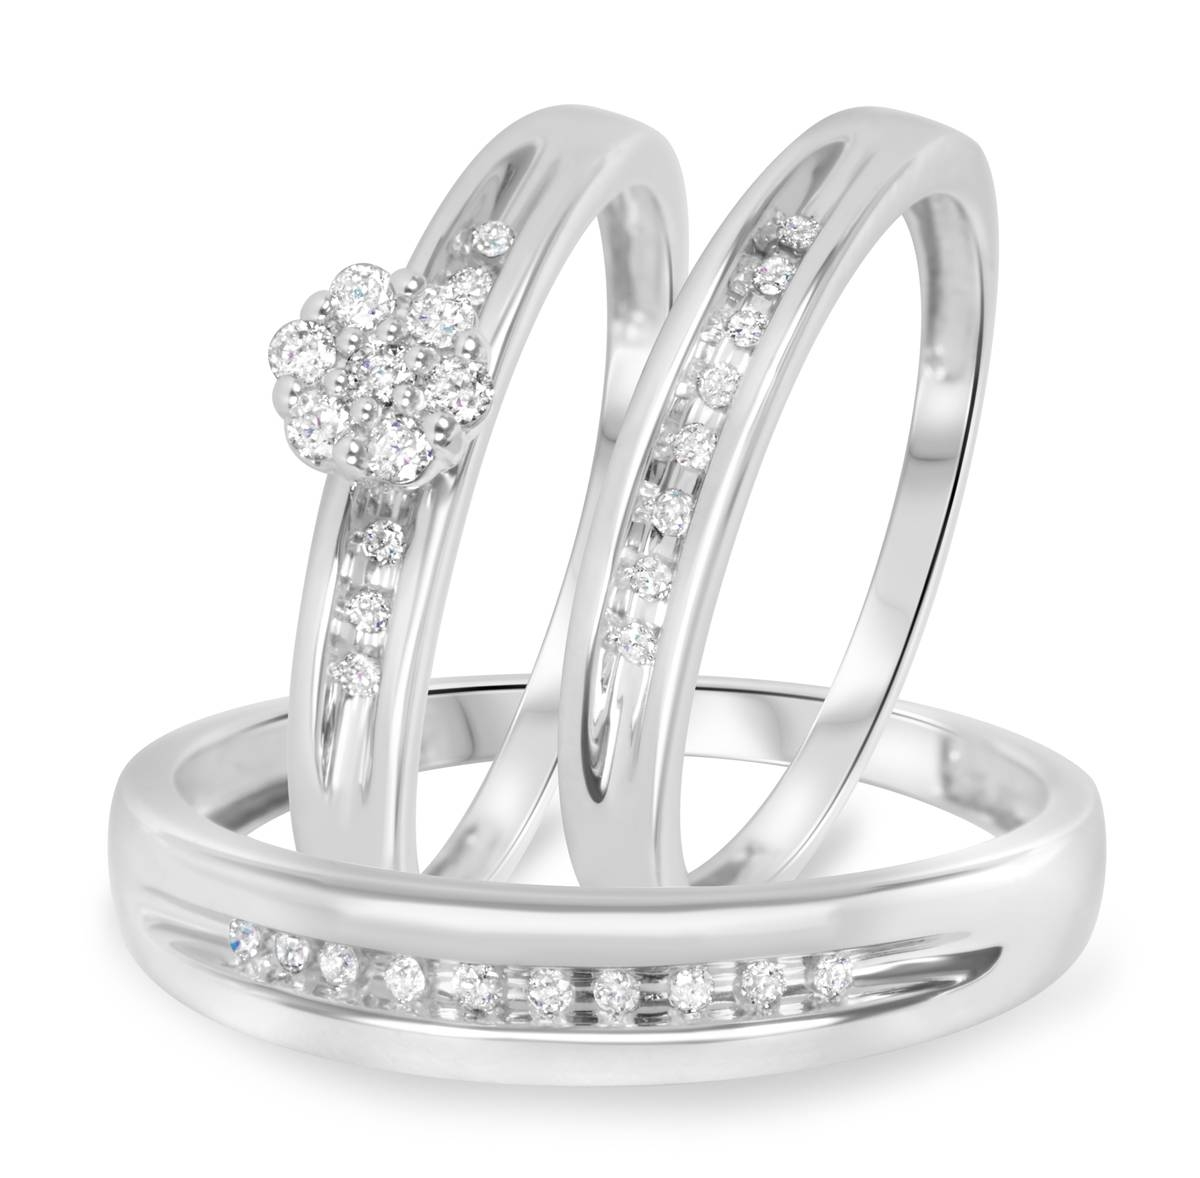 Photo Gallery of Layaway Wedding Rings Viewing 9 of 15 Photos